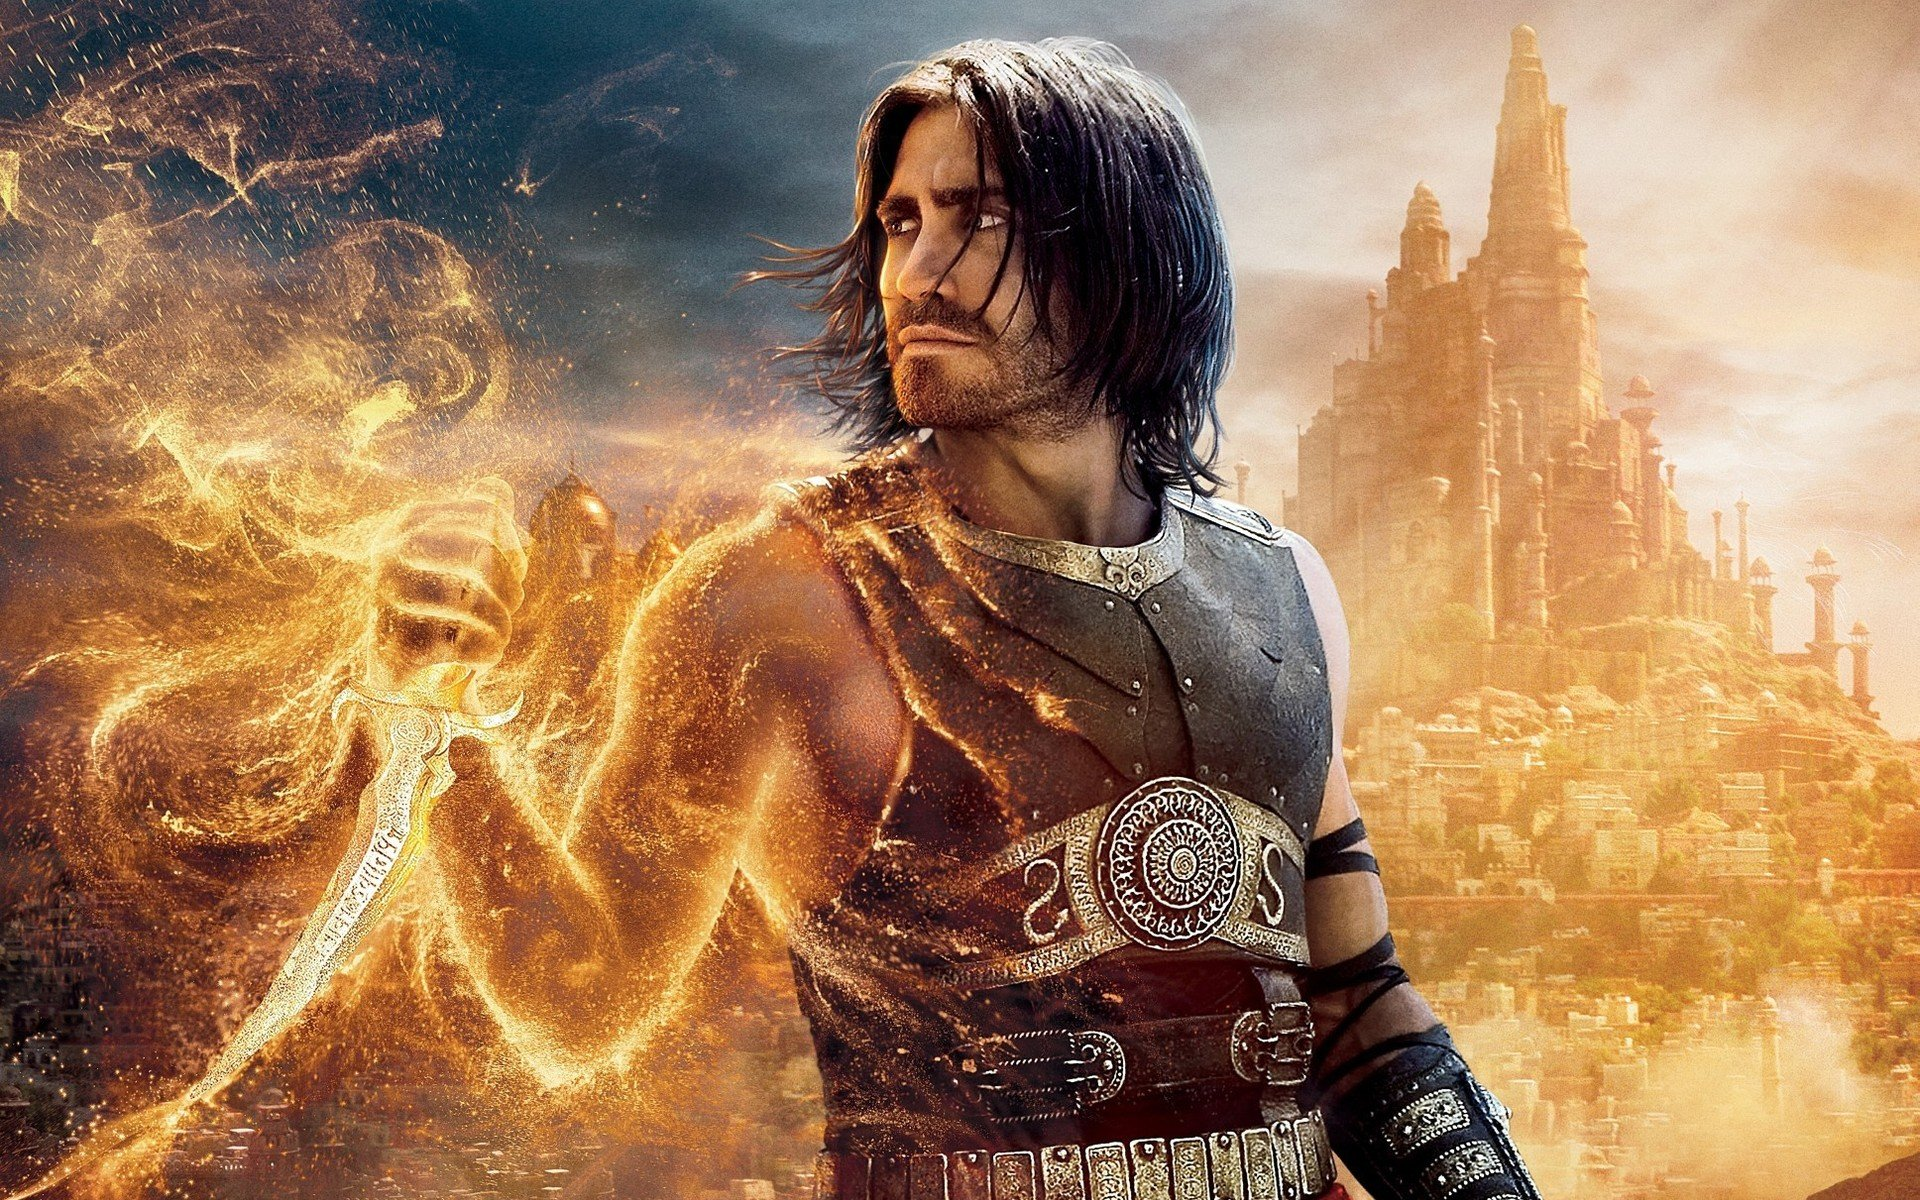 Download Hd 1920x1200 Prince Of Persia The Sands Of Time Pc